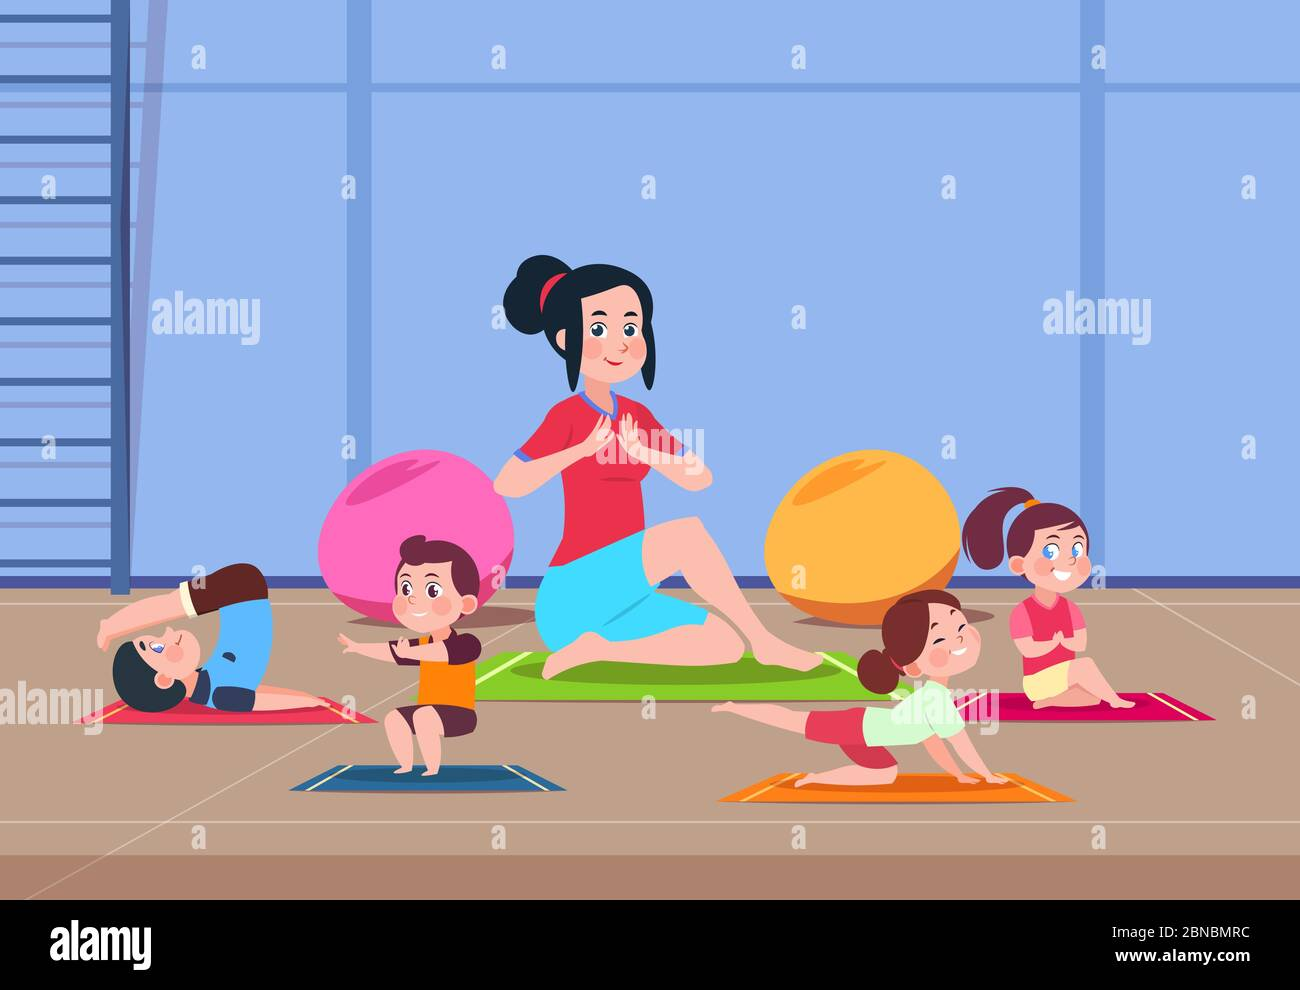 Kids In Yoga Class Cartoon Children With Instructor Doing Yoga Exercises In Gym Interior Healthy Lifestyle Vector Concept Illustration Of Yoga Exercise Kids Class Stock Vector Image Art Alamy